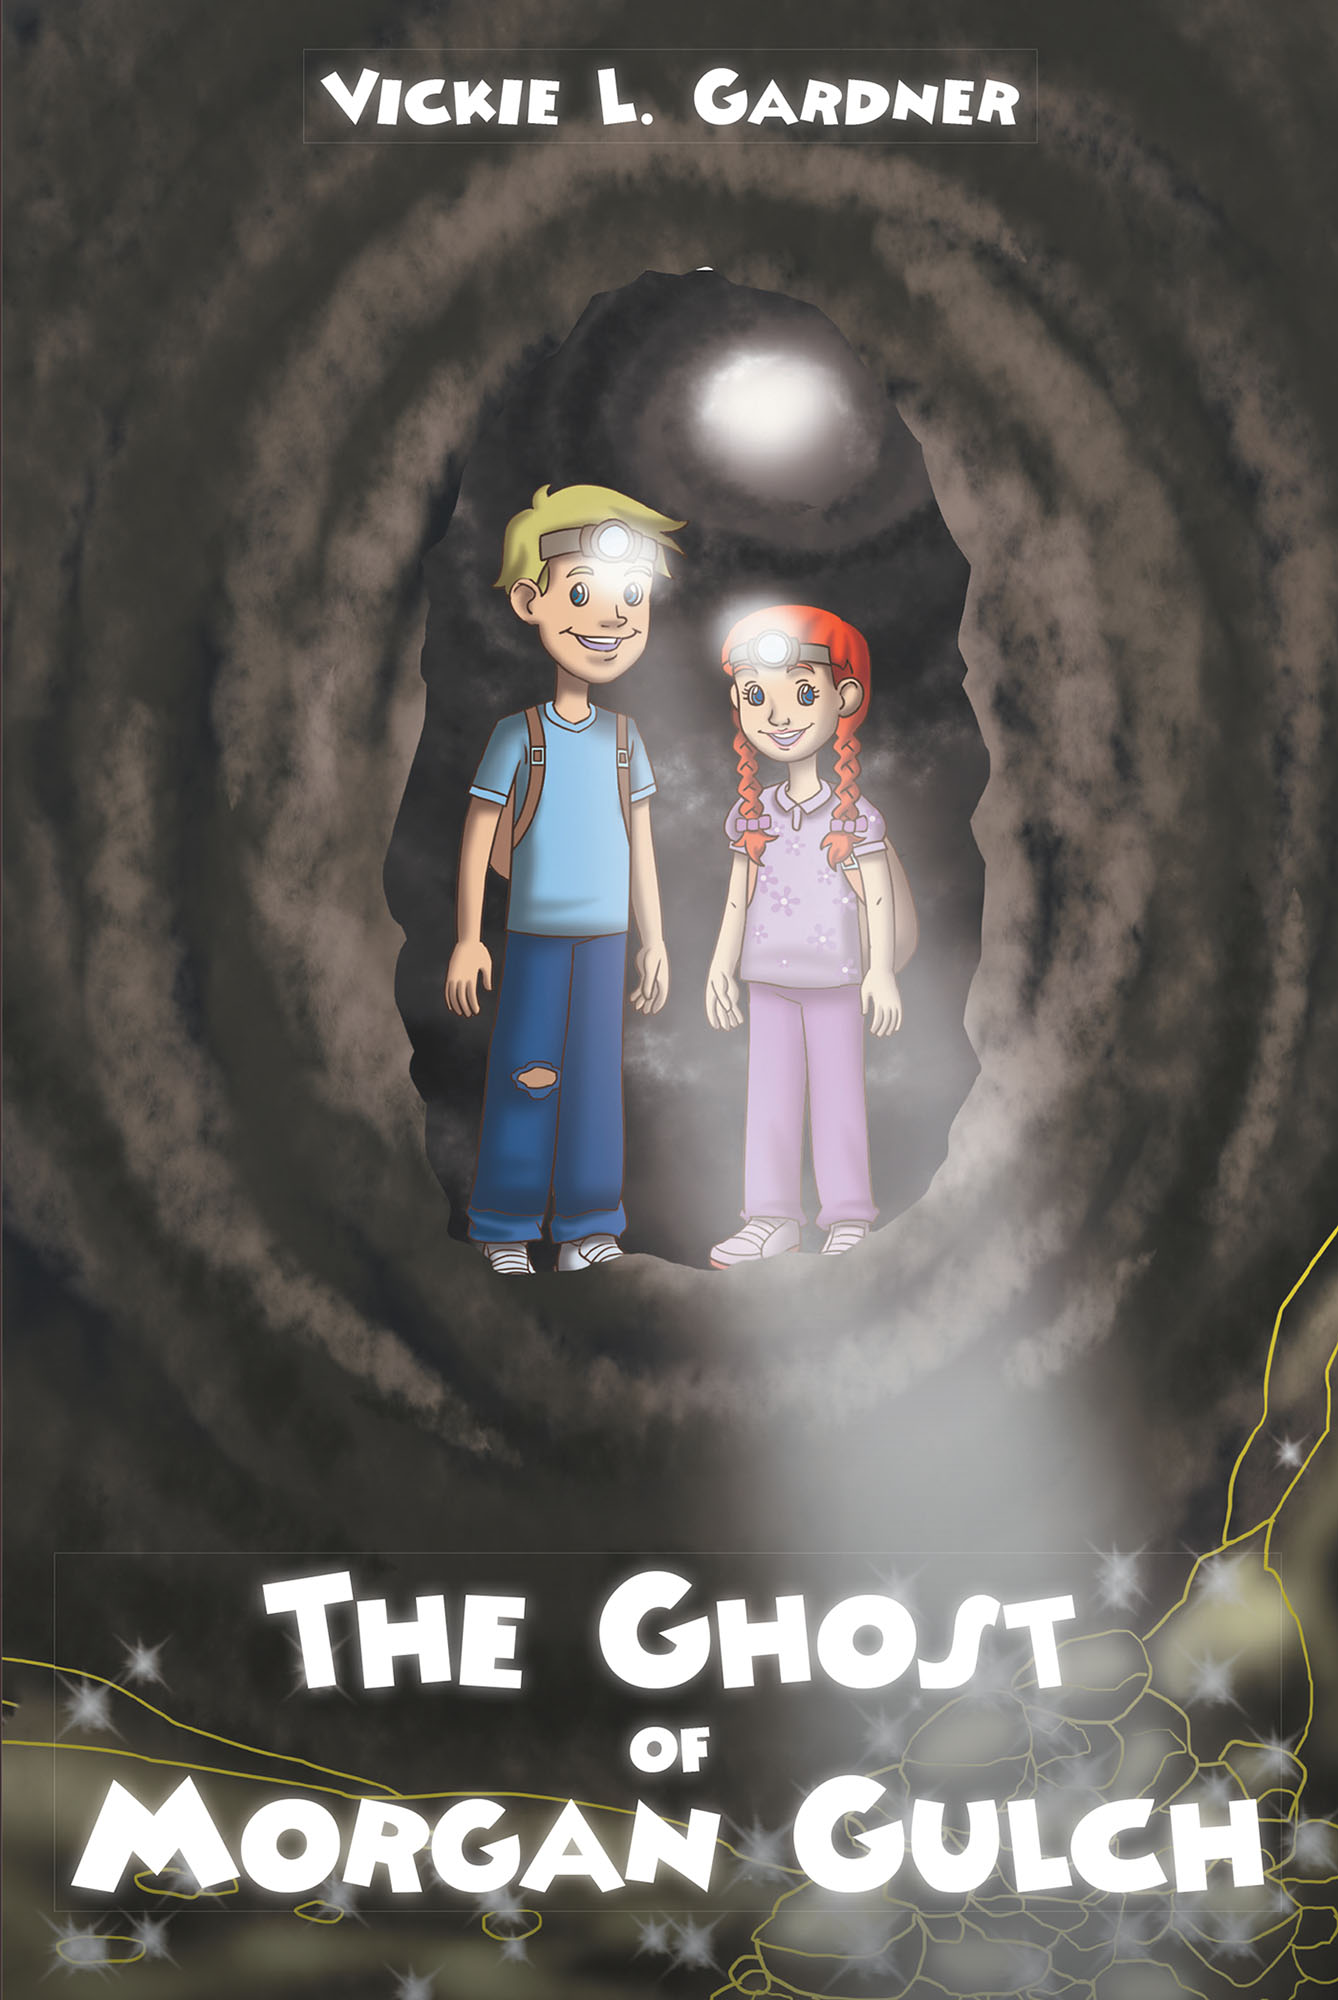 The Ghost of Morgan Gulch by Vickie L. Gardner